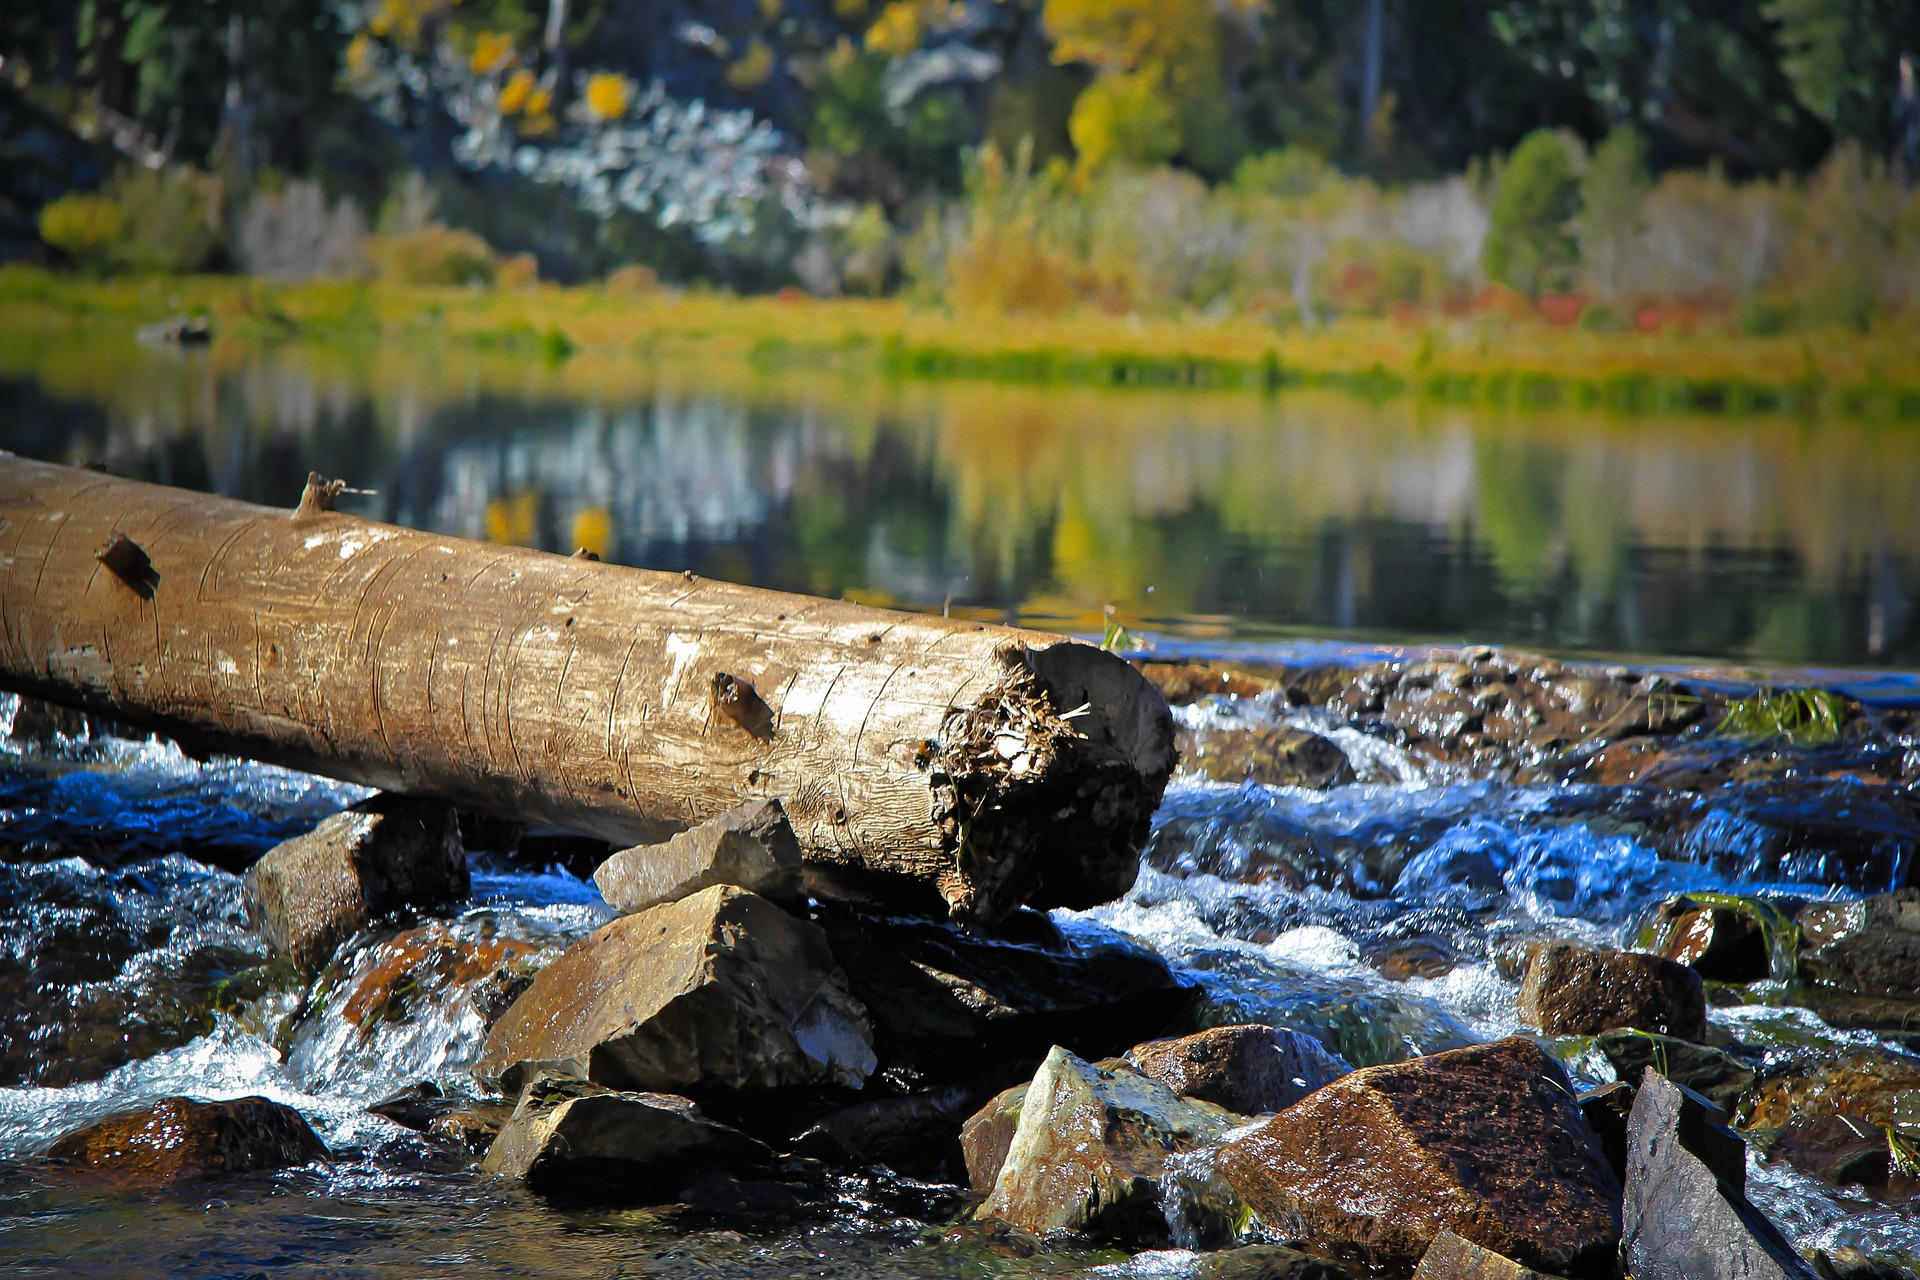 Water drains through sharp rocks with log.